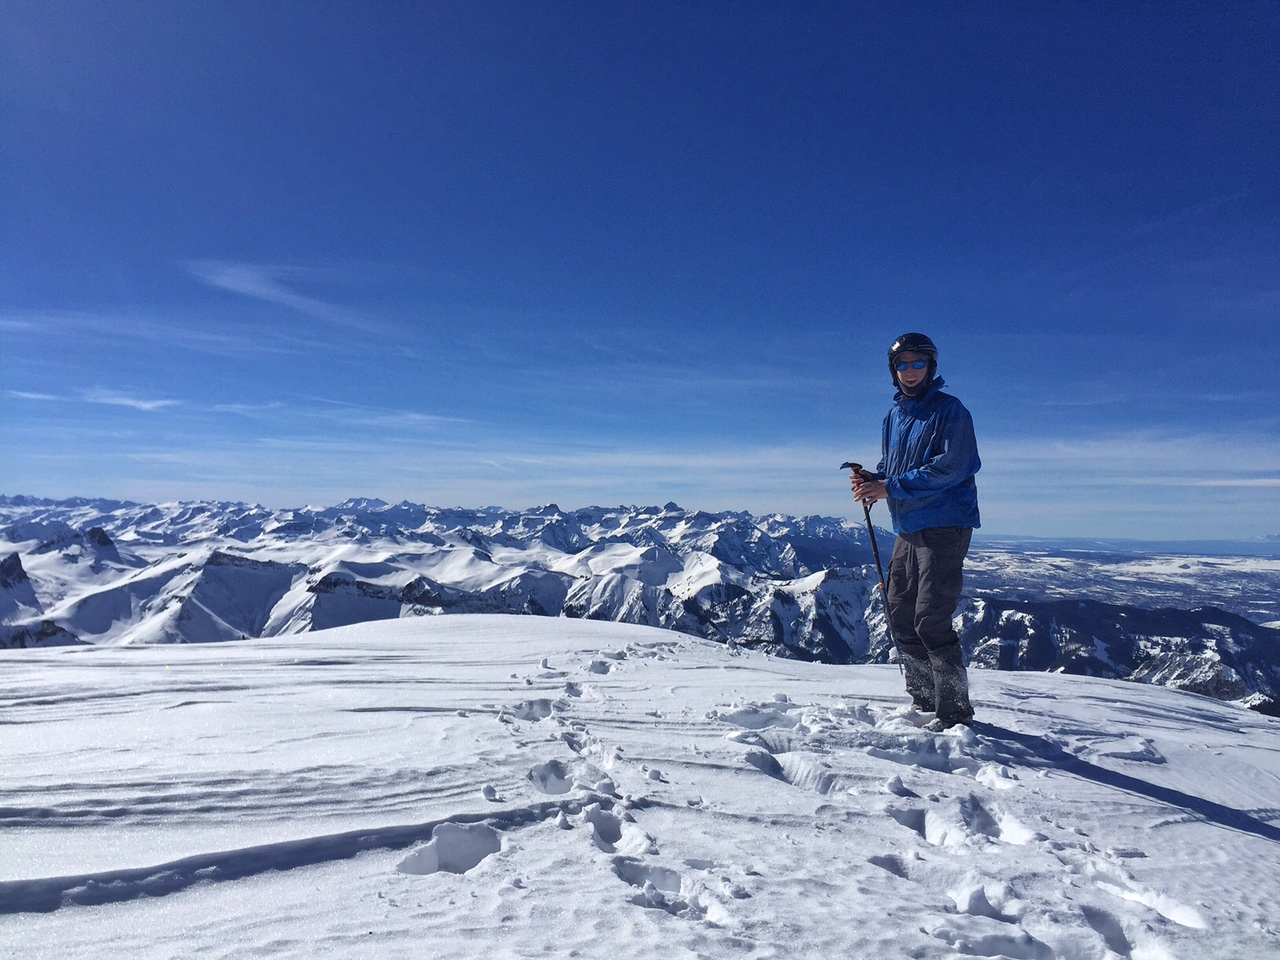 All alone on a winter summit!